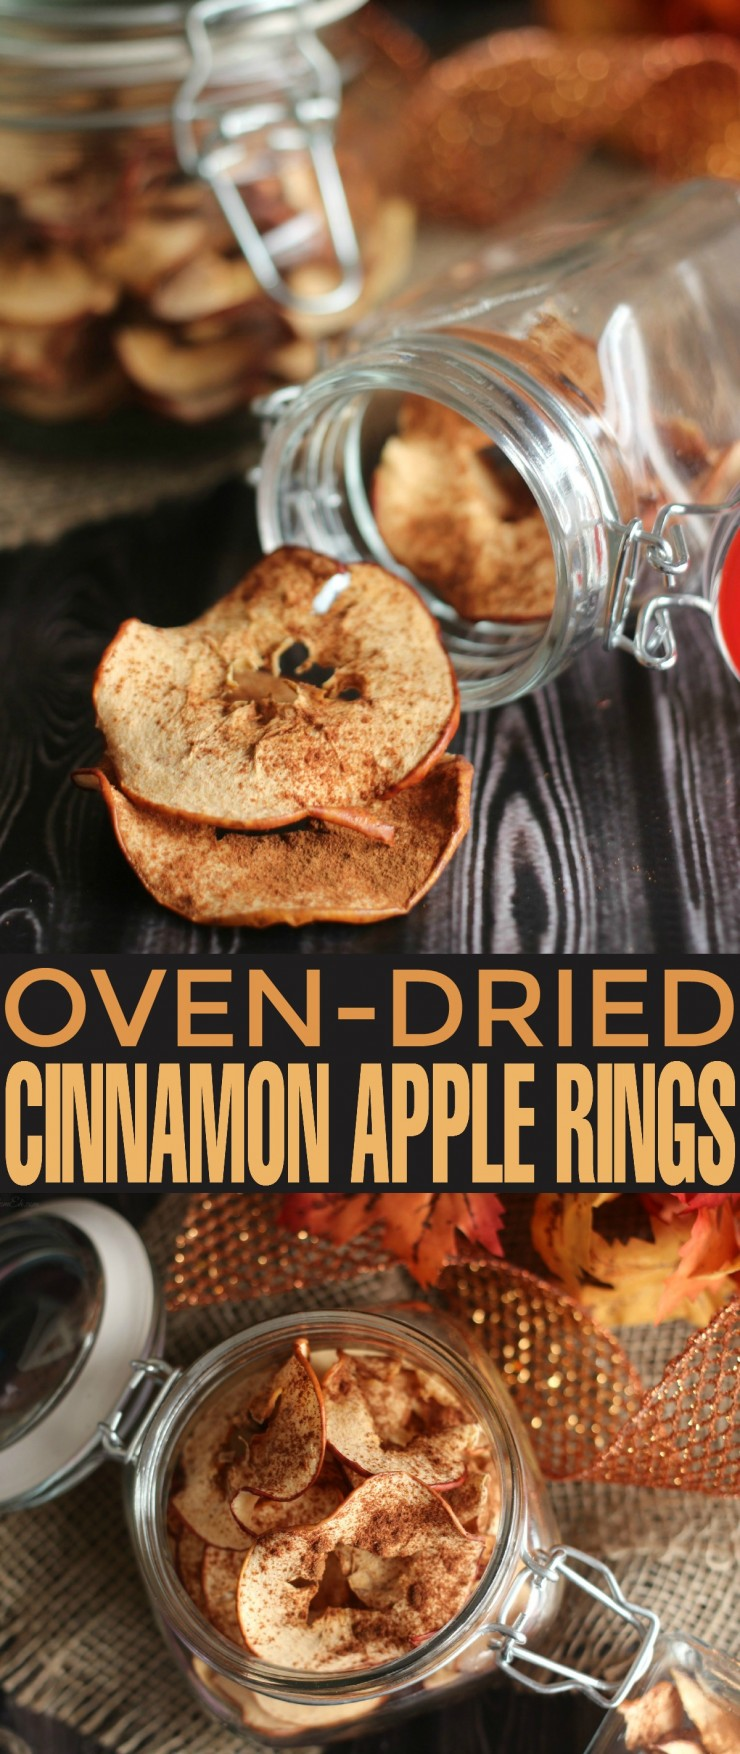 Homemade Oven-Dried Cinnamon Apple Rings. A delicious, healthy and easy to make snack with all those autumn apples!